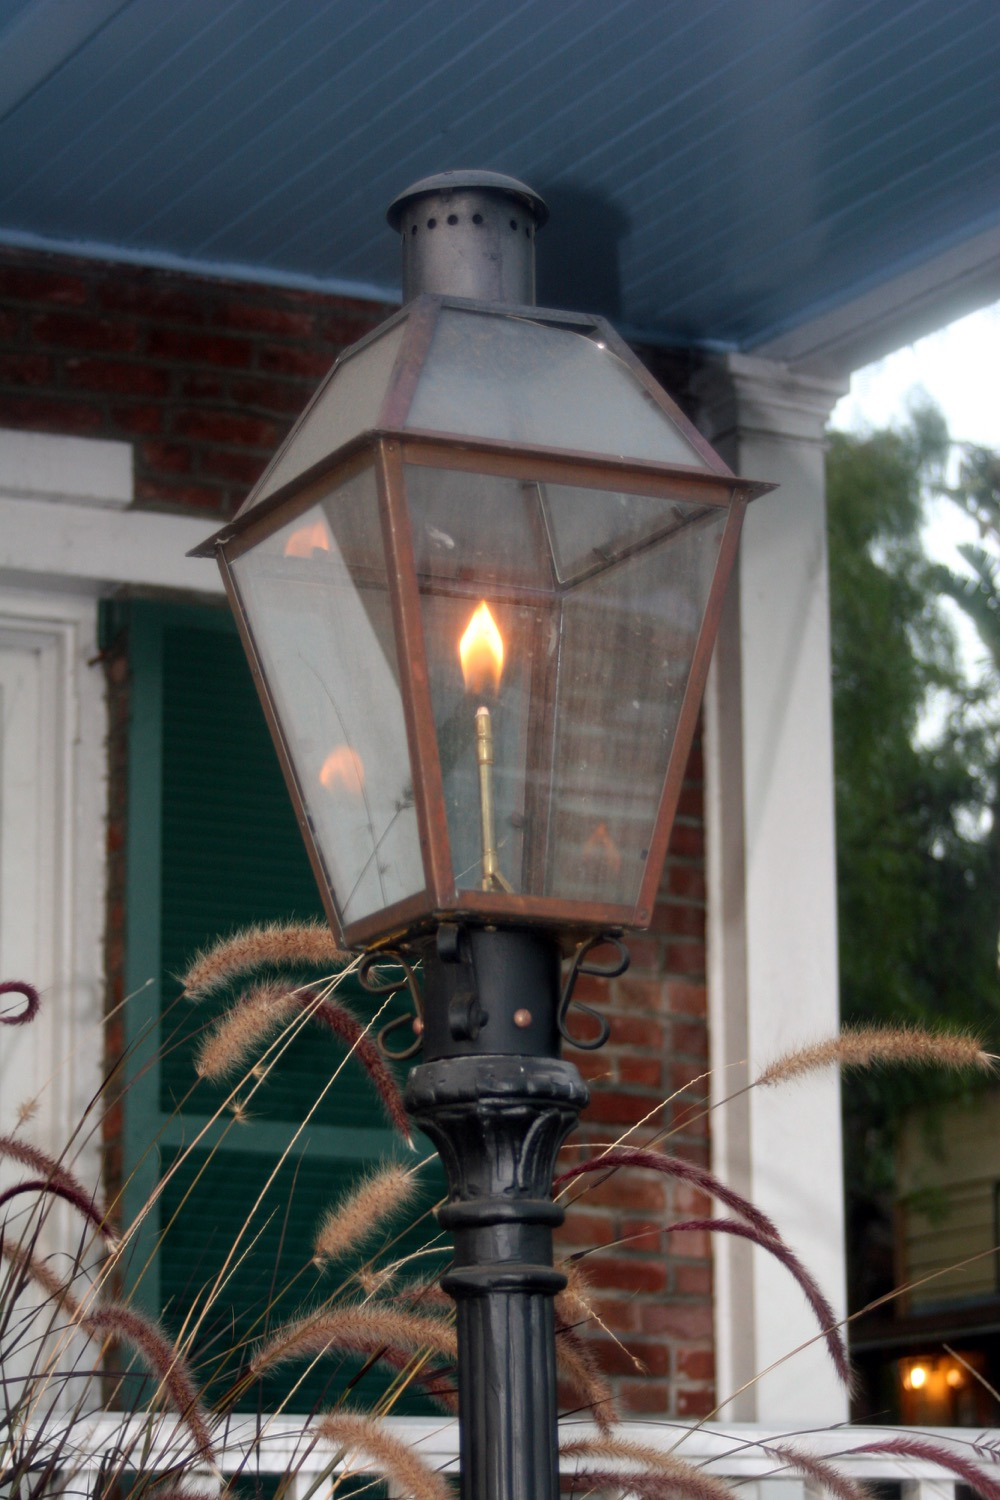 A propane-powered gas lamp in front of a brick house.